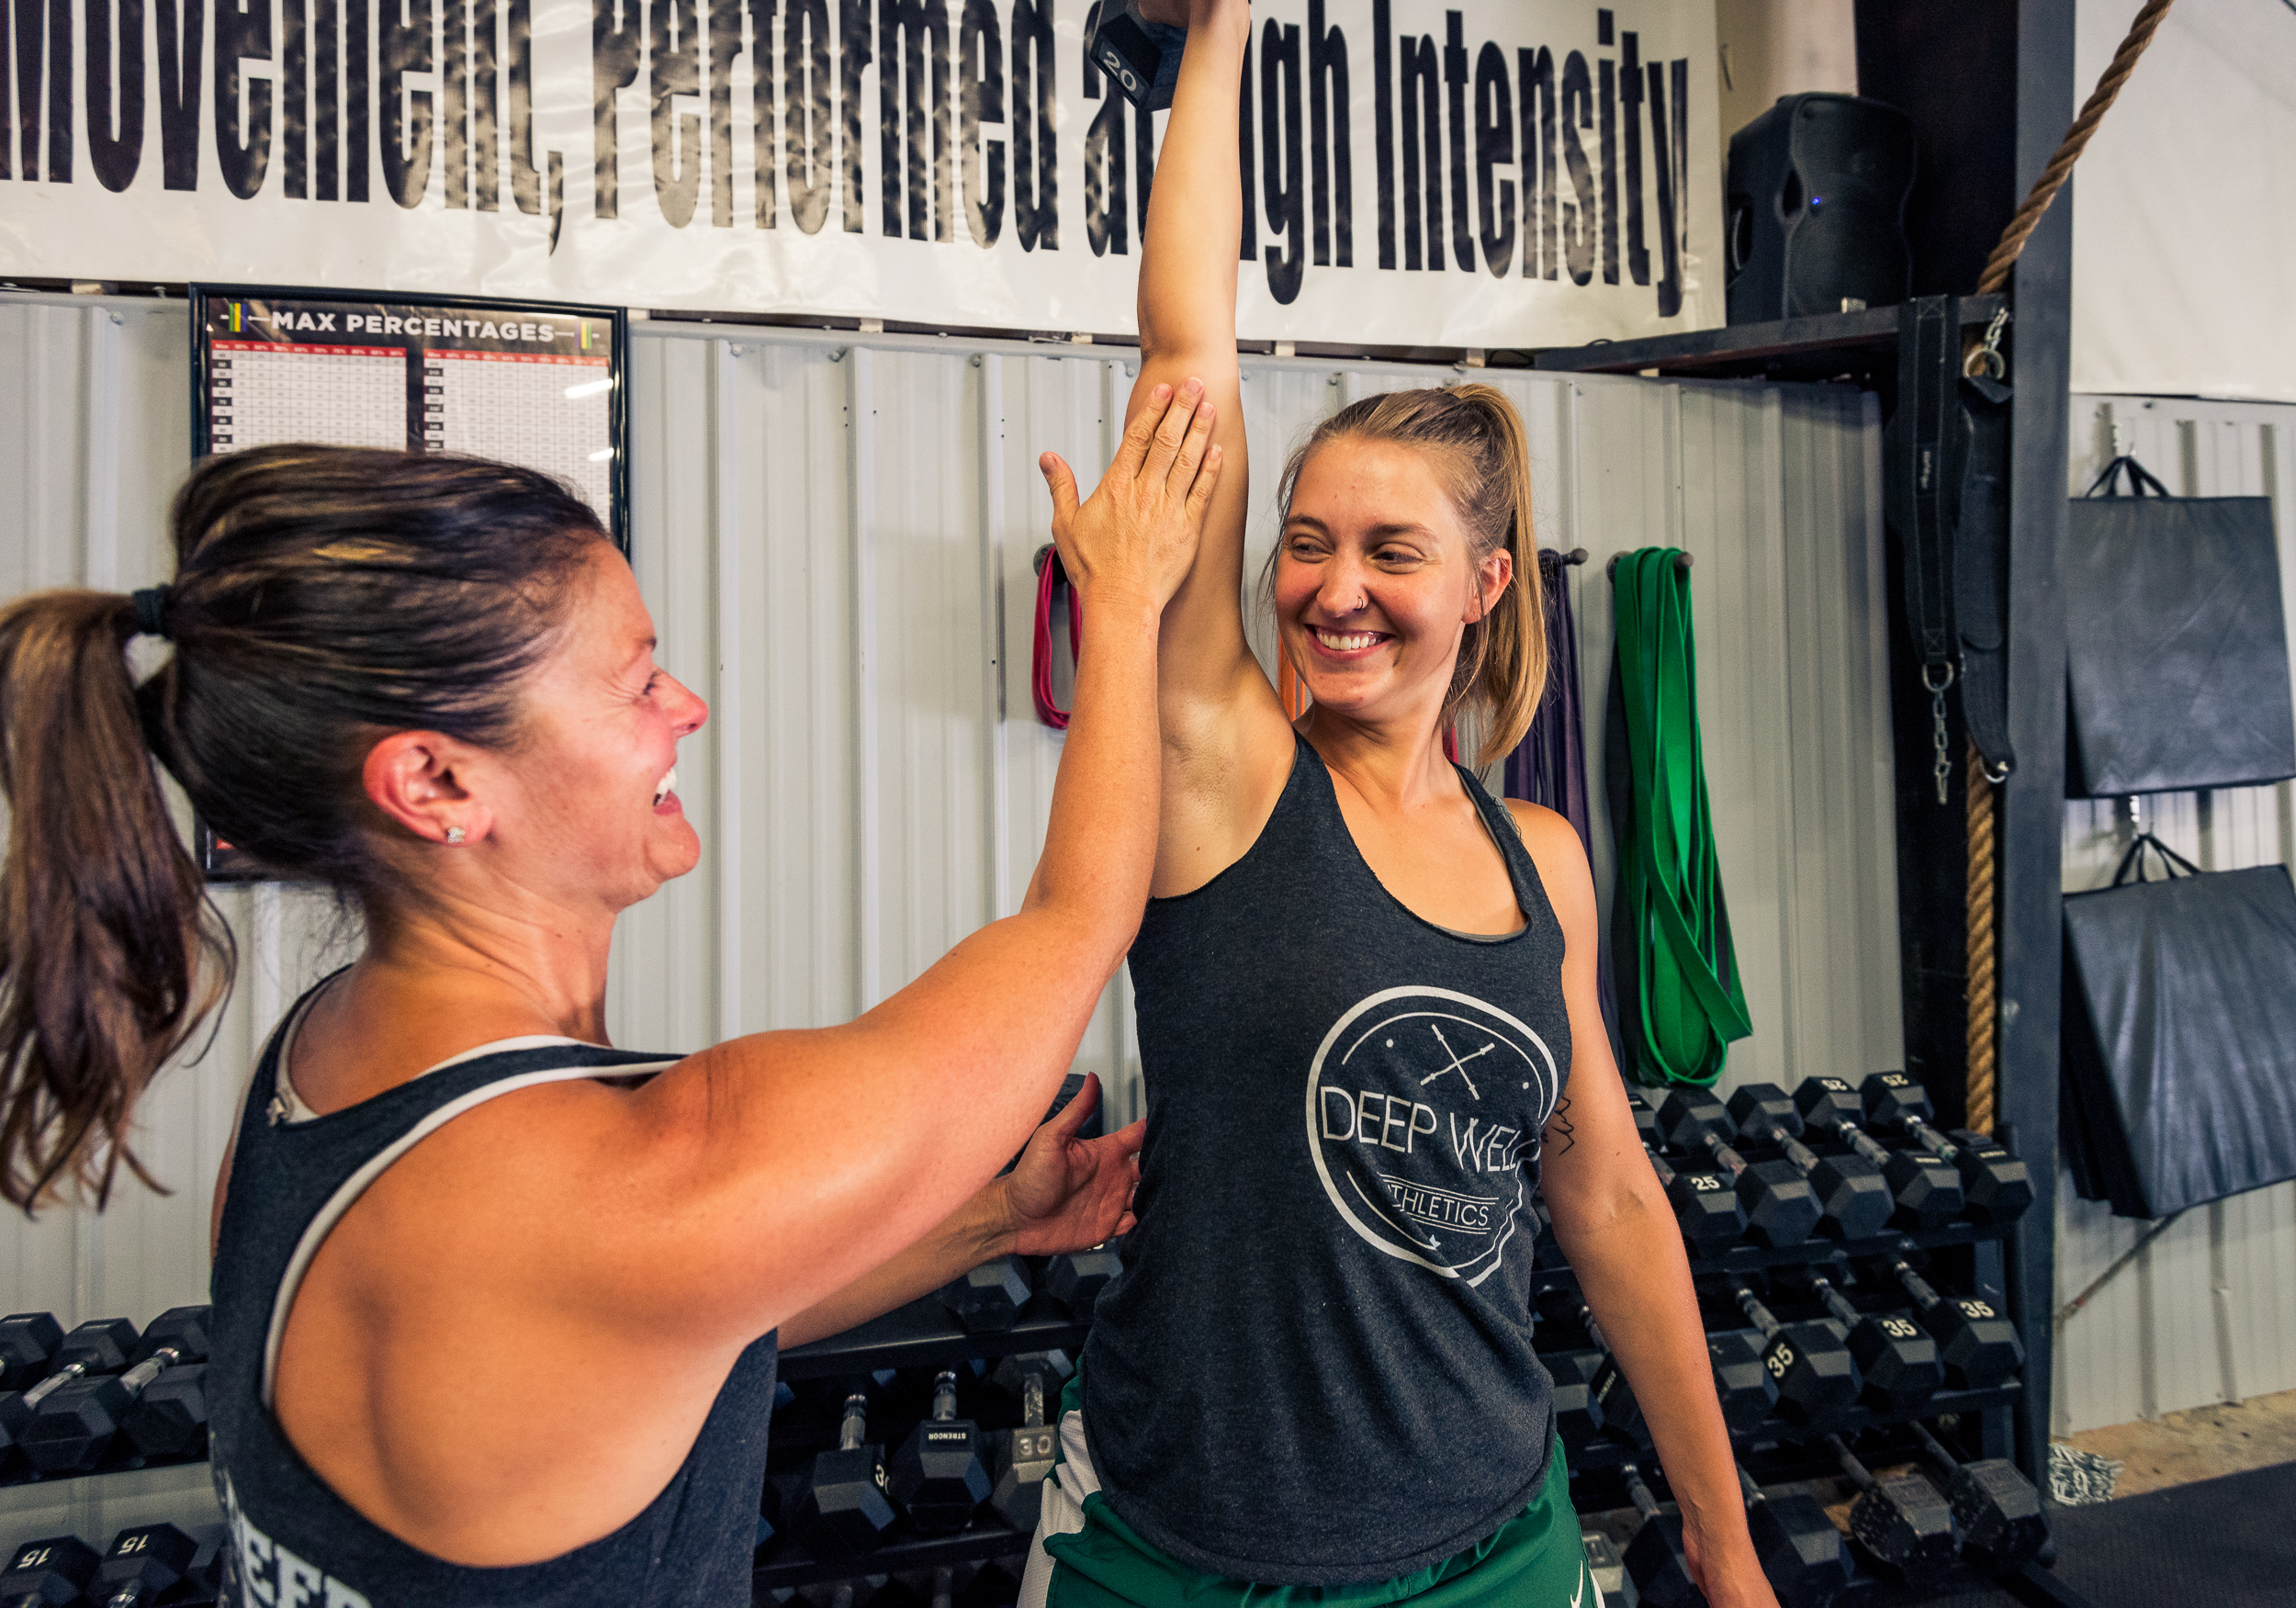 Personal Training - 1-on-1 training provides a private and more intimate experience for anyone looking start their fitness journey in a more private setting. With this service, you're in control of your training schedule and every session is individually tailored to your goals and fitness level.